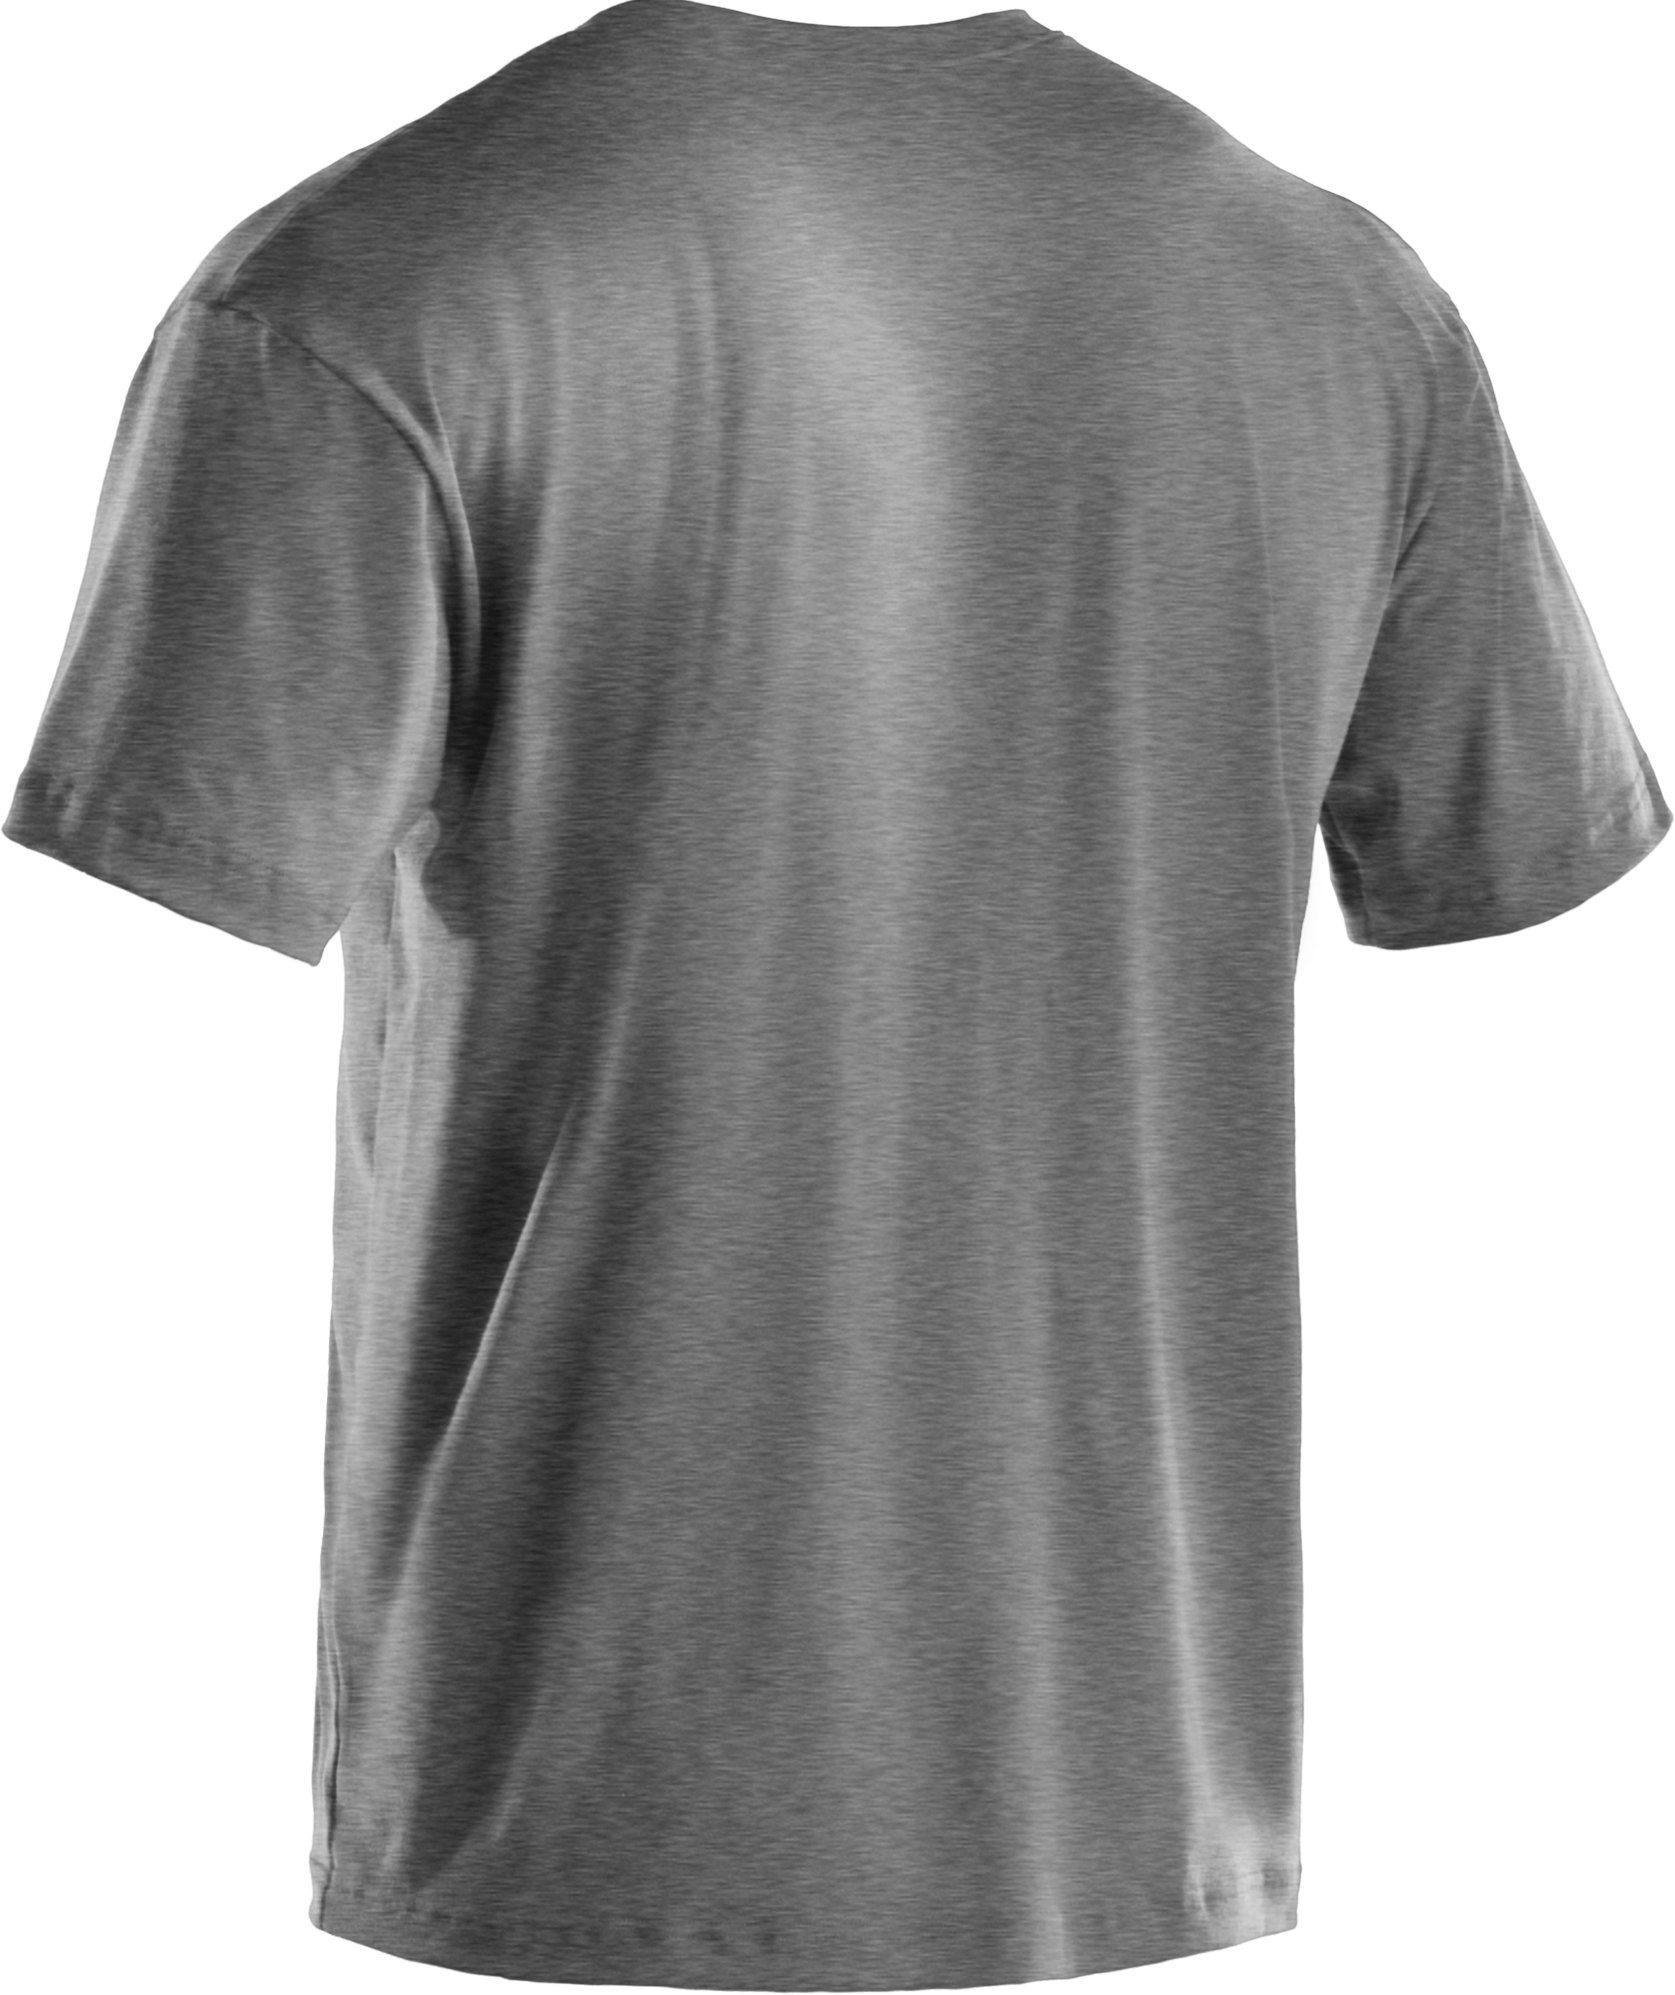 Men's Charged Cotton® Fear No One T-Shirt, True Gray Heather